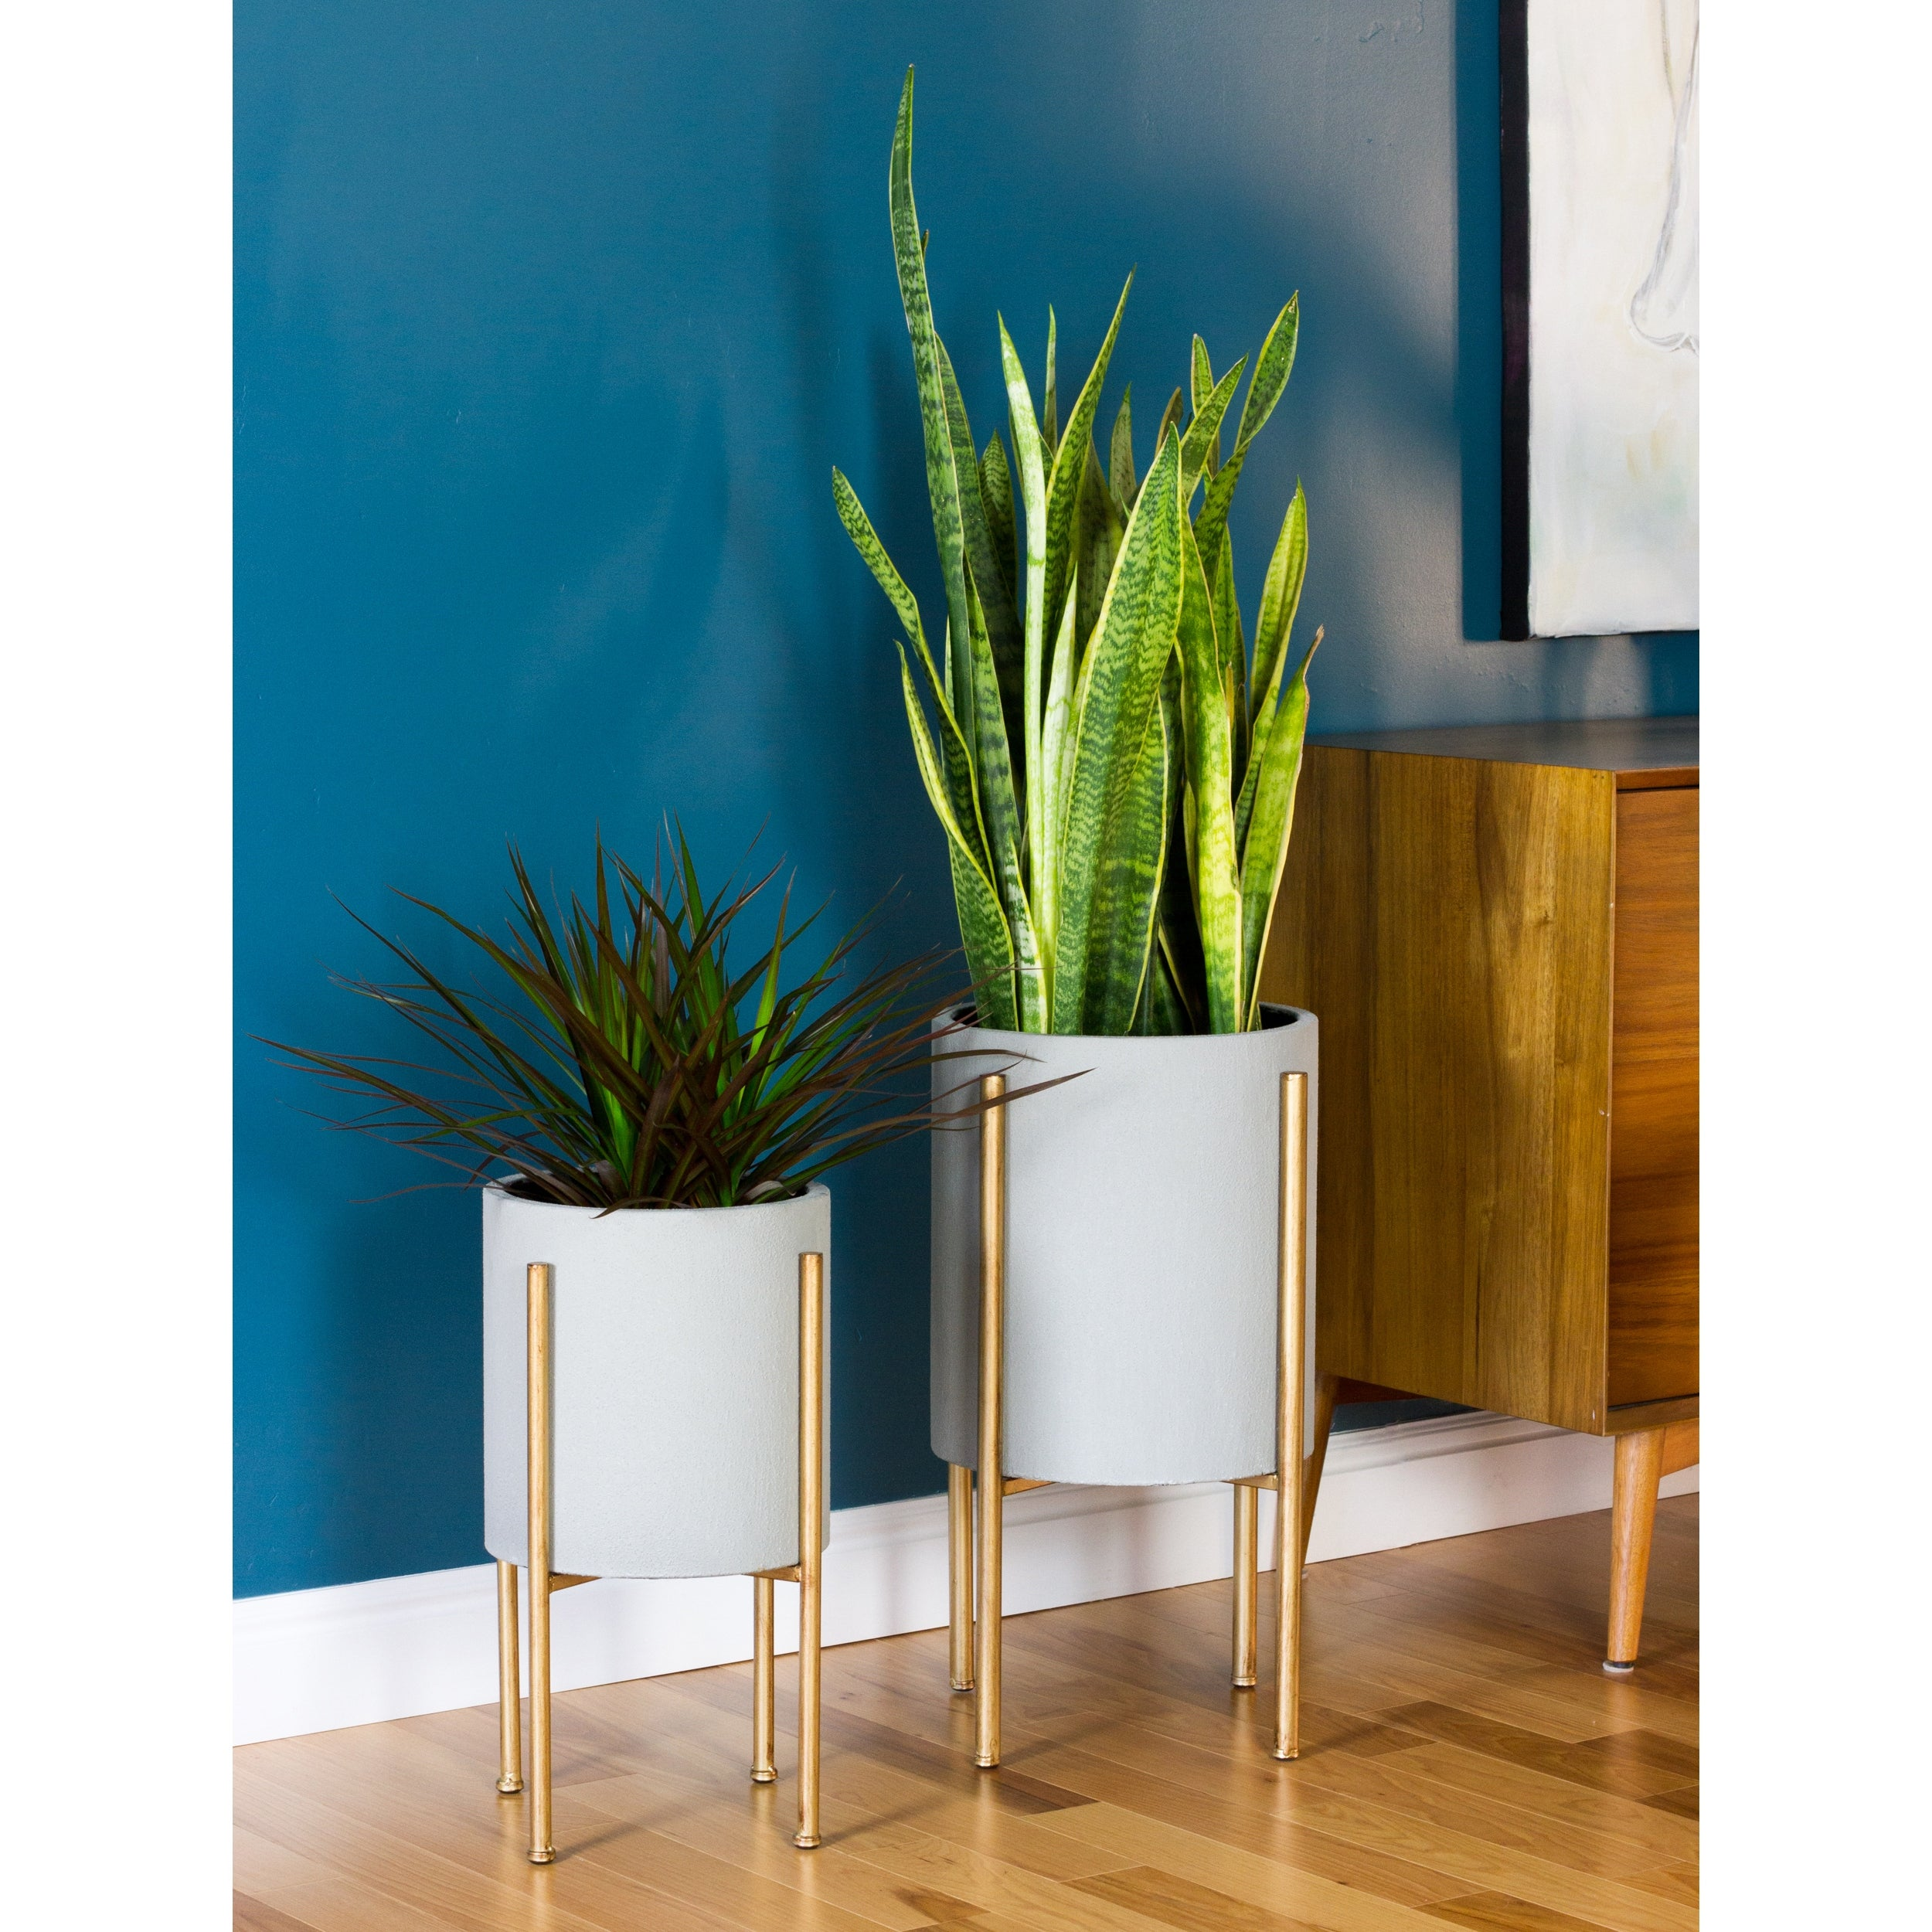 Picture of: Shop Black Friday Deals On Nabila Grey Gold Metal Mid Century Planters Set Of 2 23 H X 12 5 W X 12 5 D 19 H X 10 5 W X 10 5 D Overstock 20112741